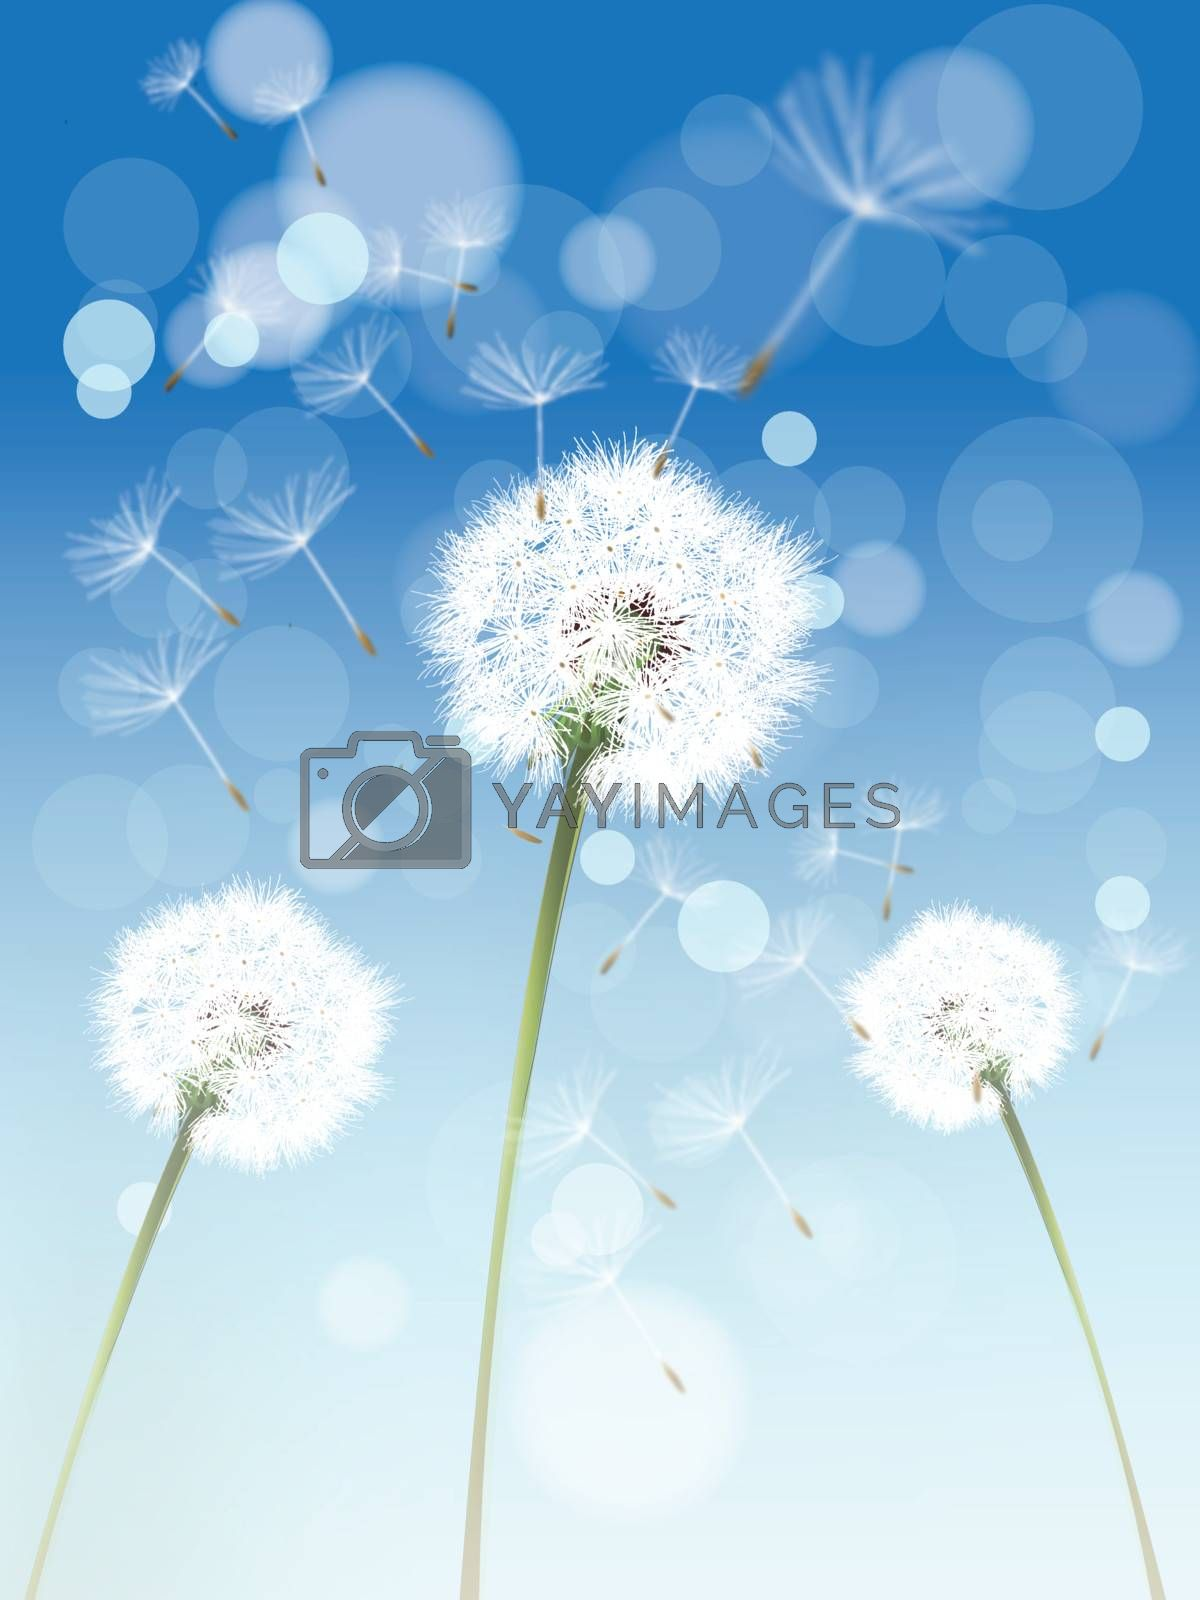 Royalty free image of Dandelion by nirots